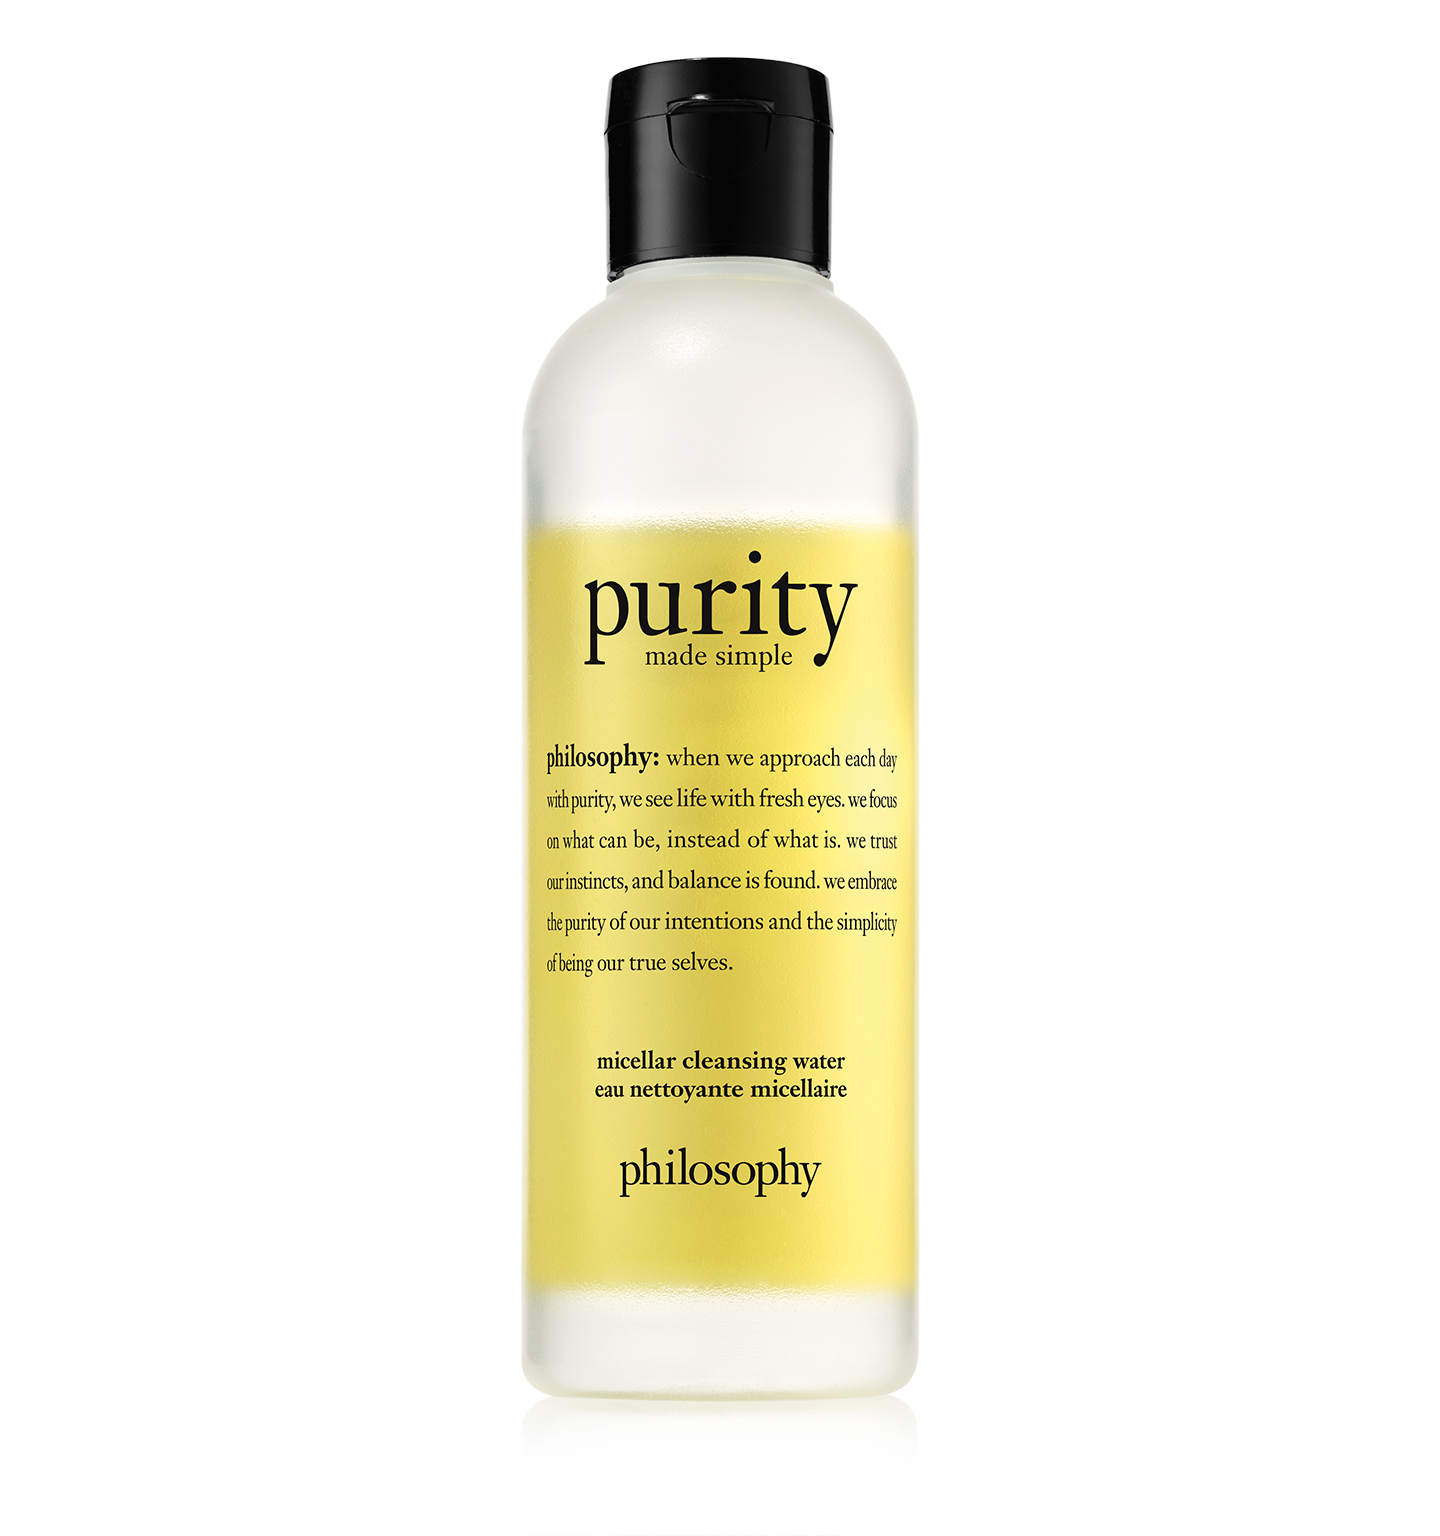 philosophy purity made simple micellar cleansing water bottle